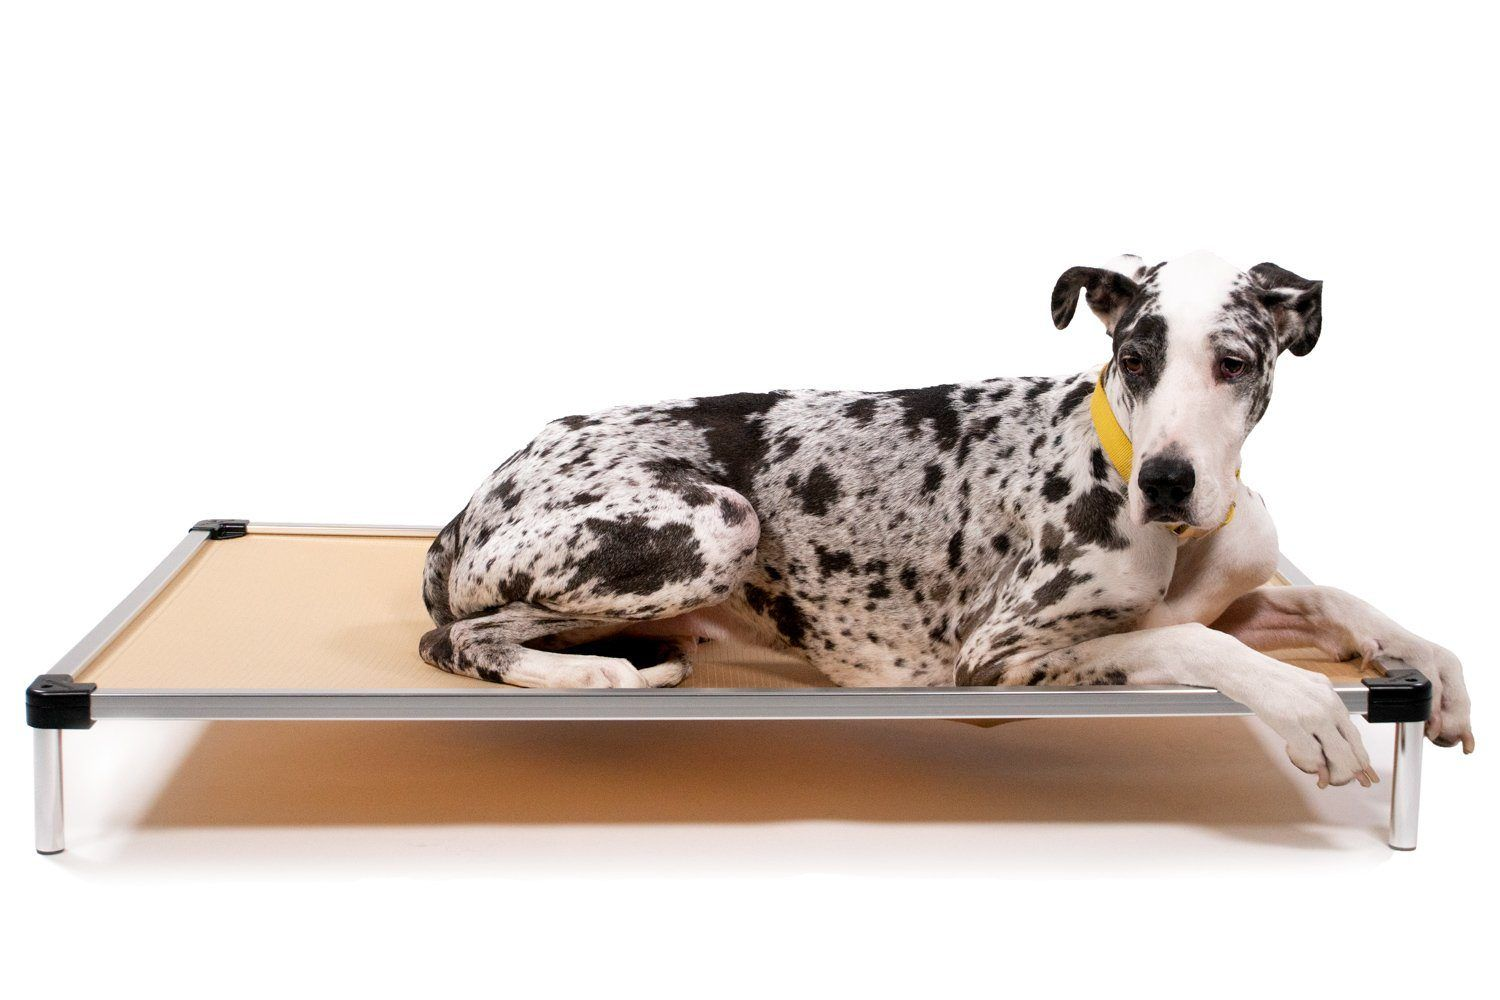 Chew Proof Elevated Dog Bed Indestructible Dog Beds K9 Ballistics In 2021 Elevated Dog Bed Indestructable Dog Bed Dog Bed